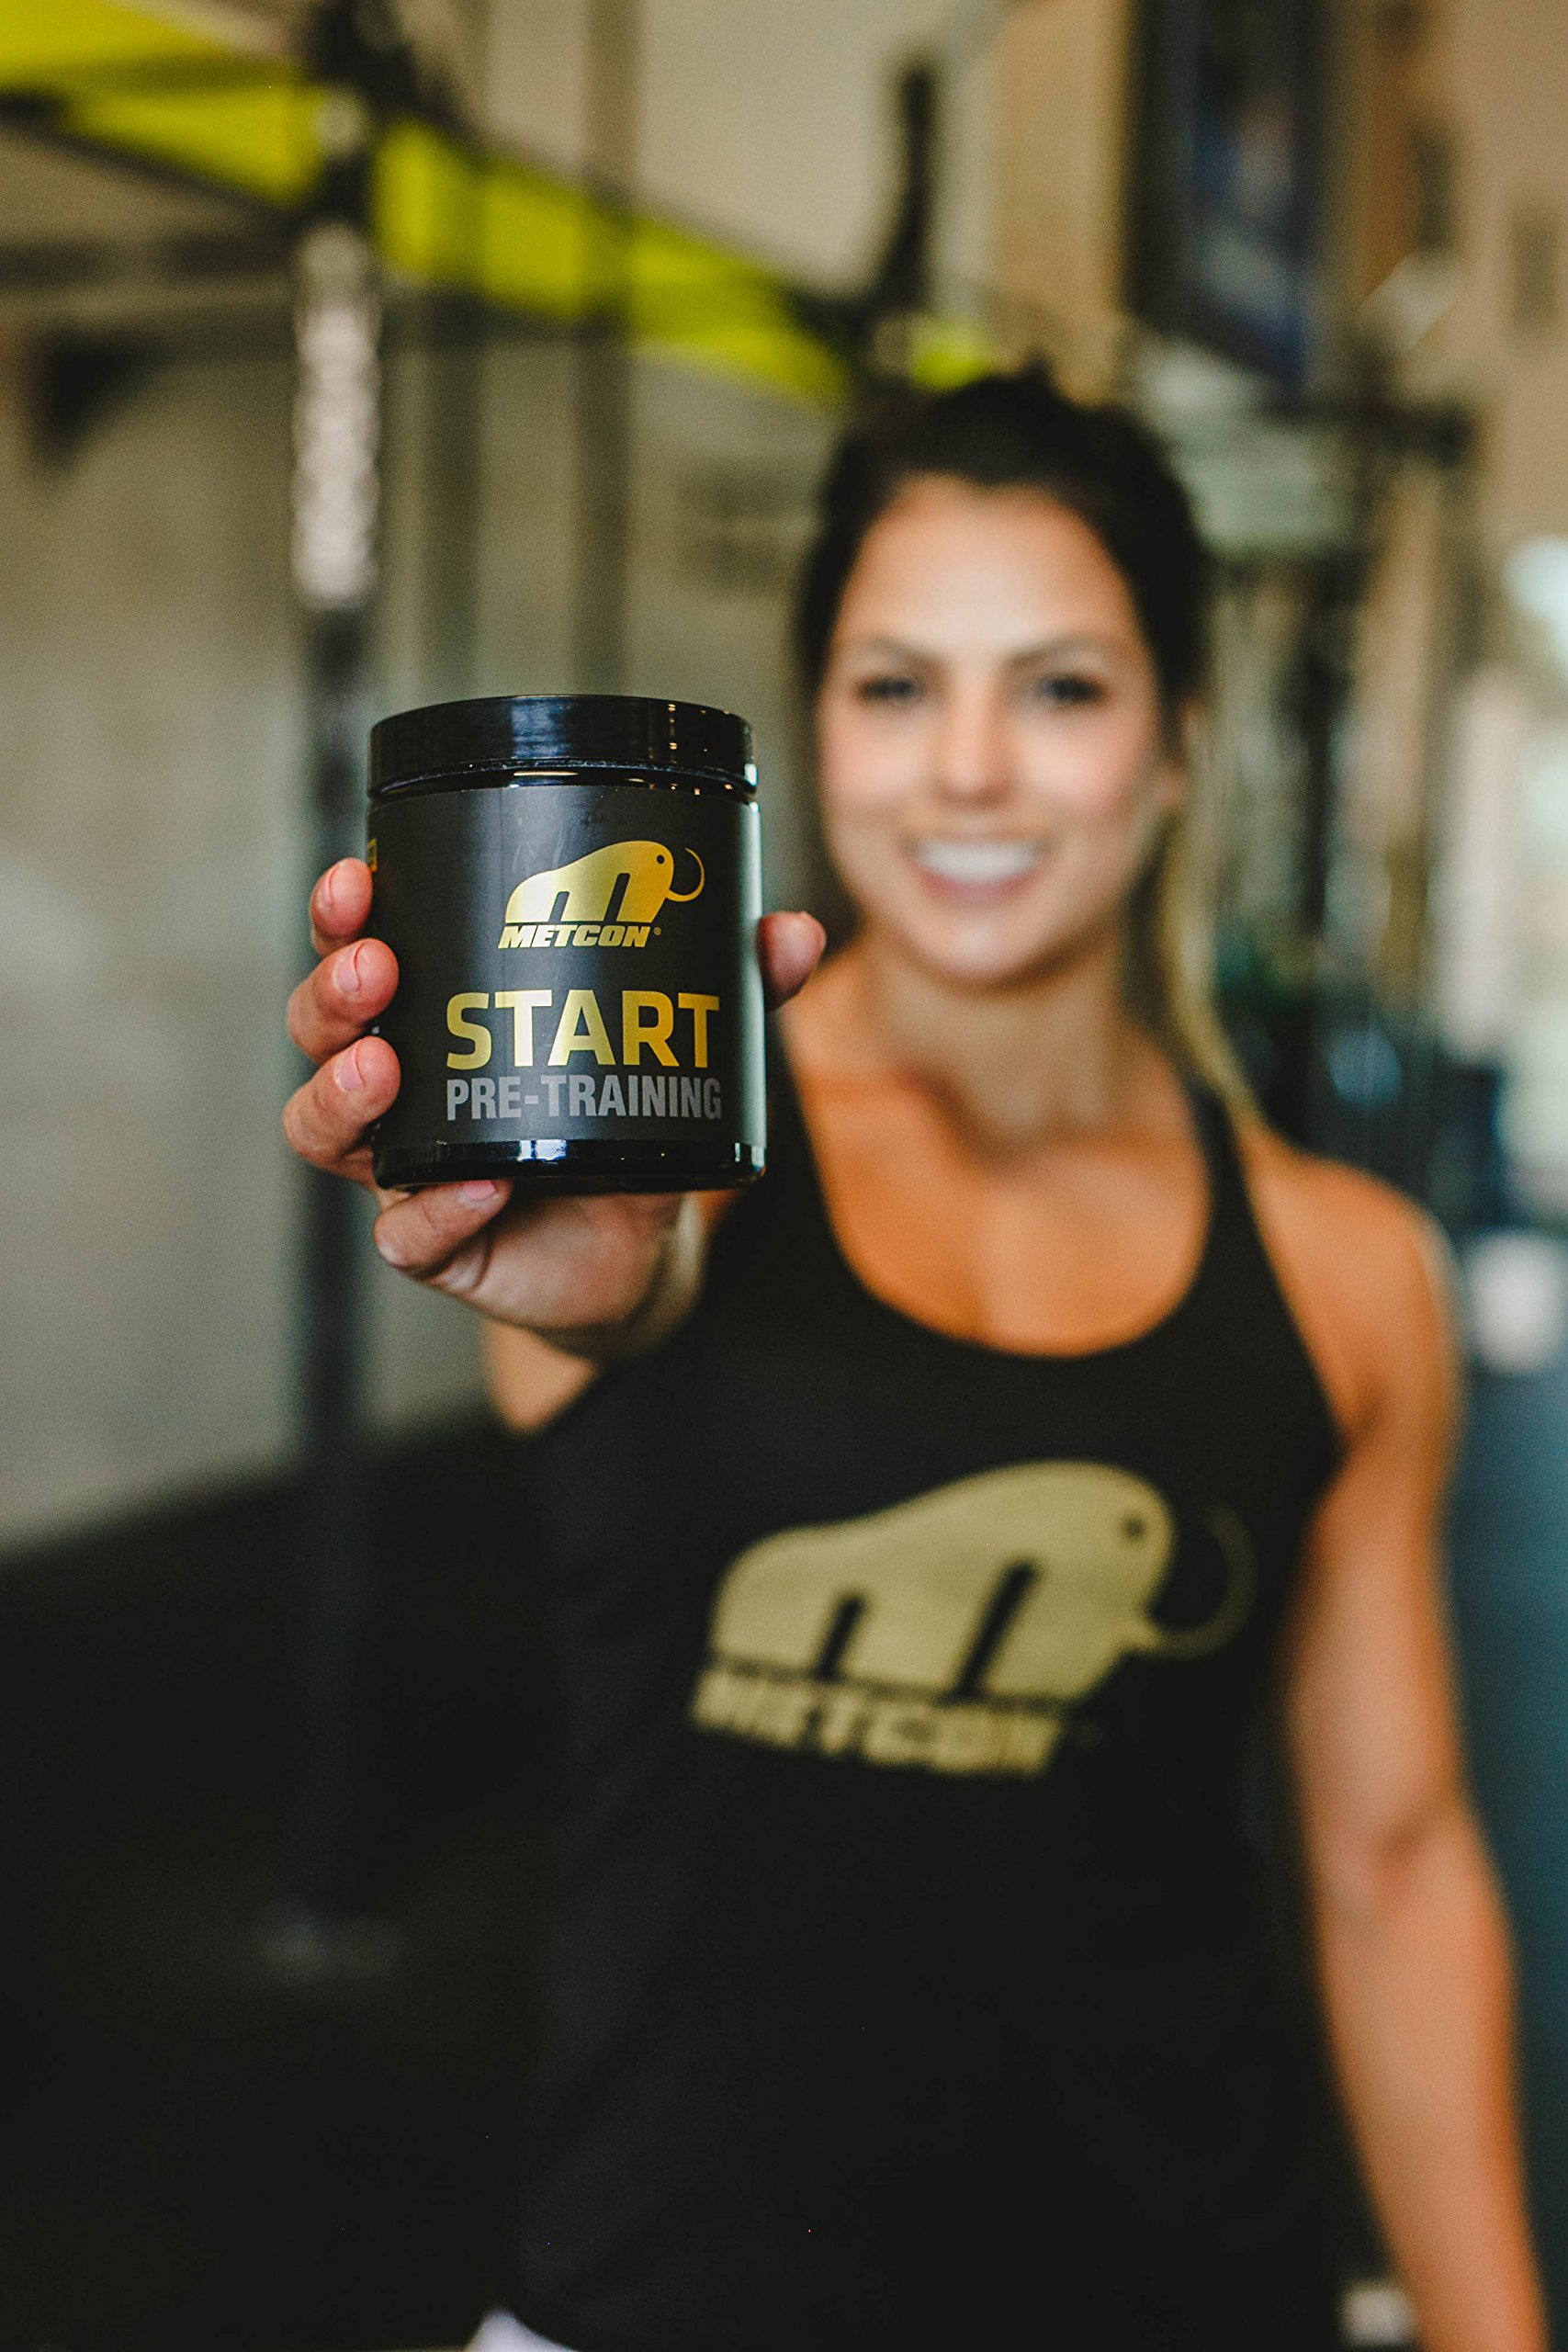 MetCon Start Pre-Workout Supplement- The Ultimate Pre Training Powder For Nitric Oxide Production & Lactic Acid Build Up - All Natural Formula For Muscle Endurance, Supreme Energy & Focus- 30 Servings by MetCon (Image #4)